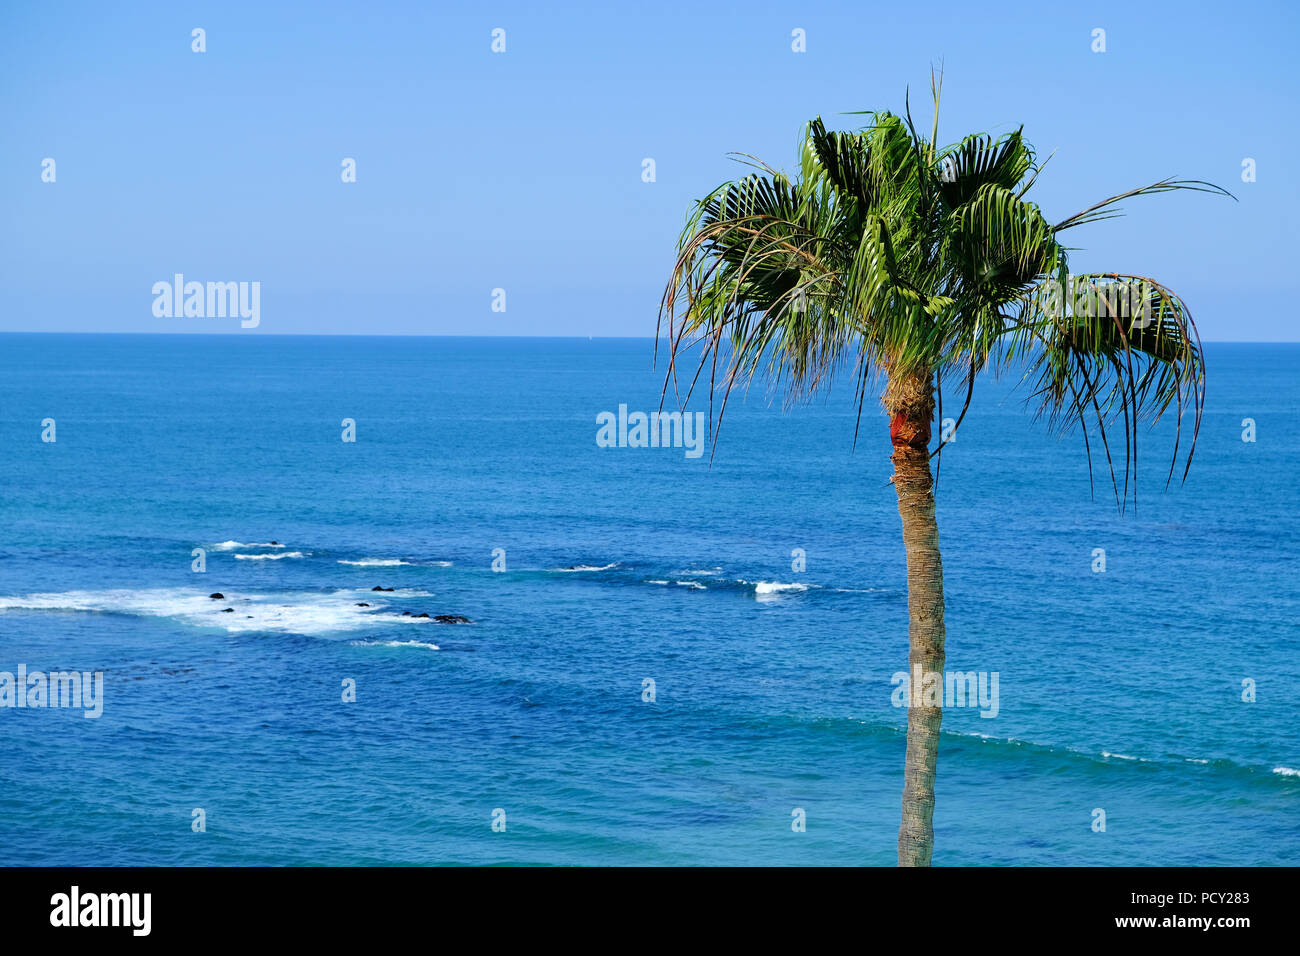 View of the Pacific Ocean and a single palm tree in Rosarito, Baja California, Mexico. - Stock Image